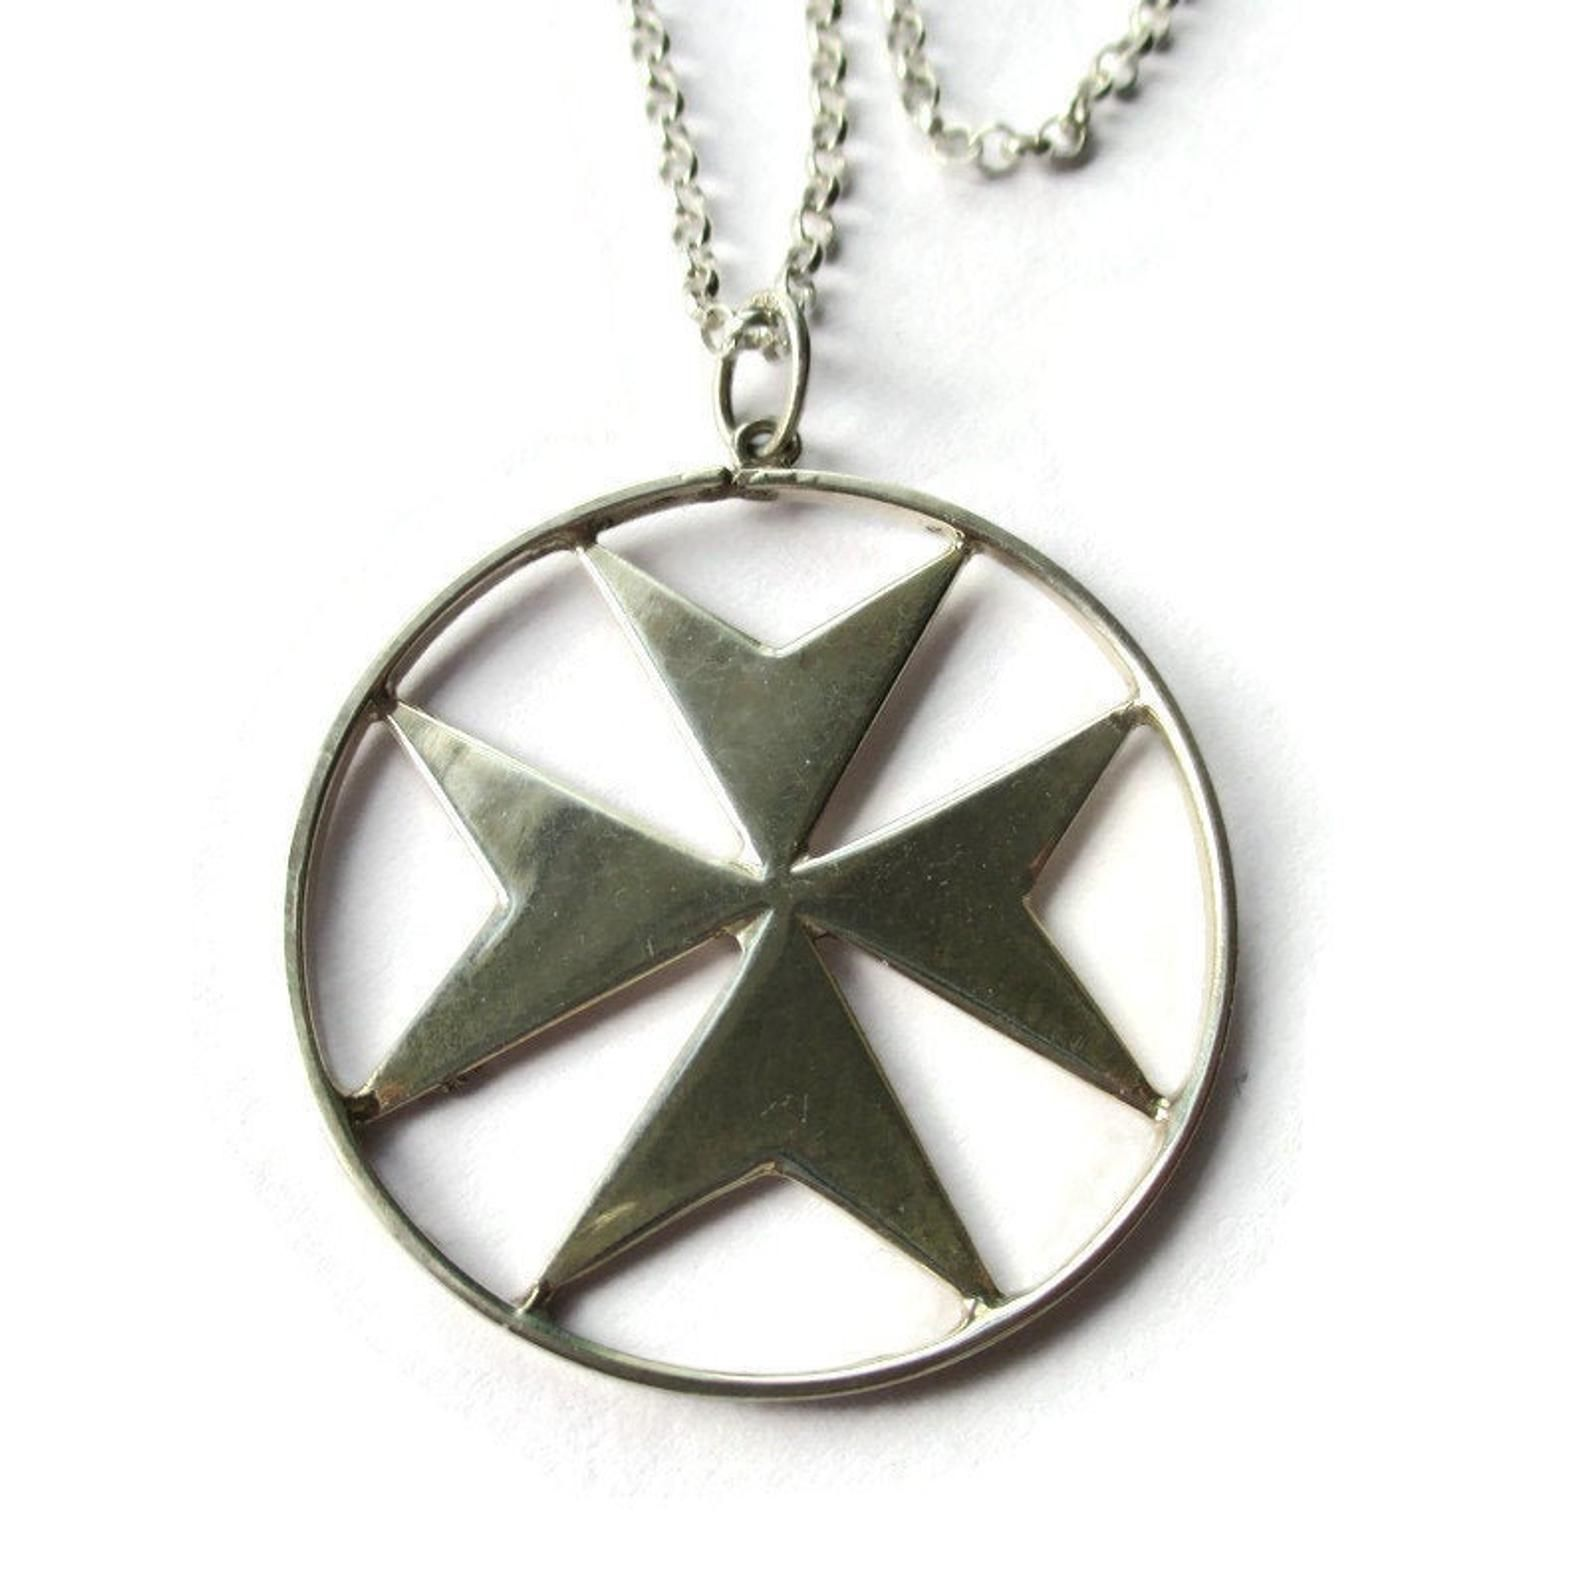 Large Maltese Cross 917 Silver Pendant Sterling Silver Etsy In 2020 Modernist Jewelry Sterling Silver Chains Pendant